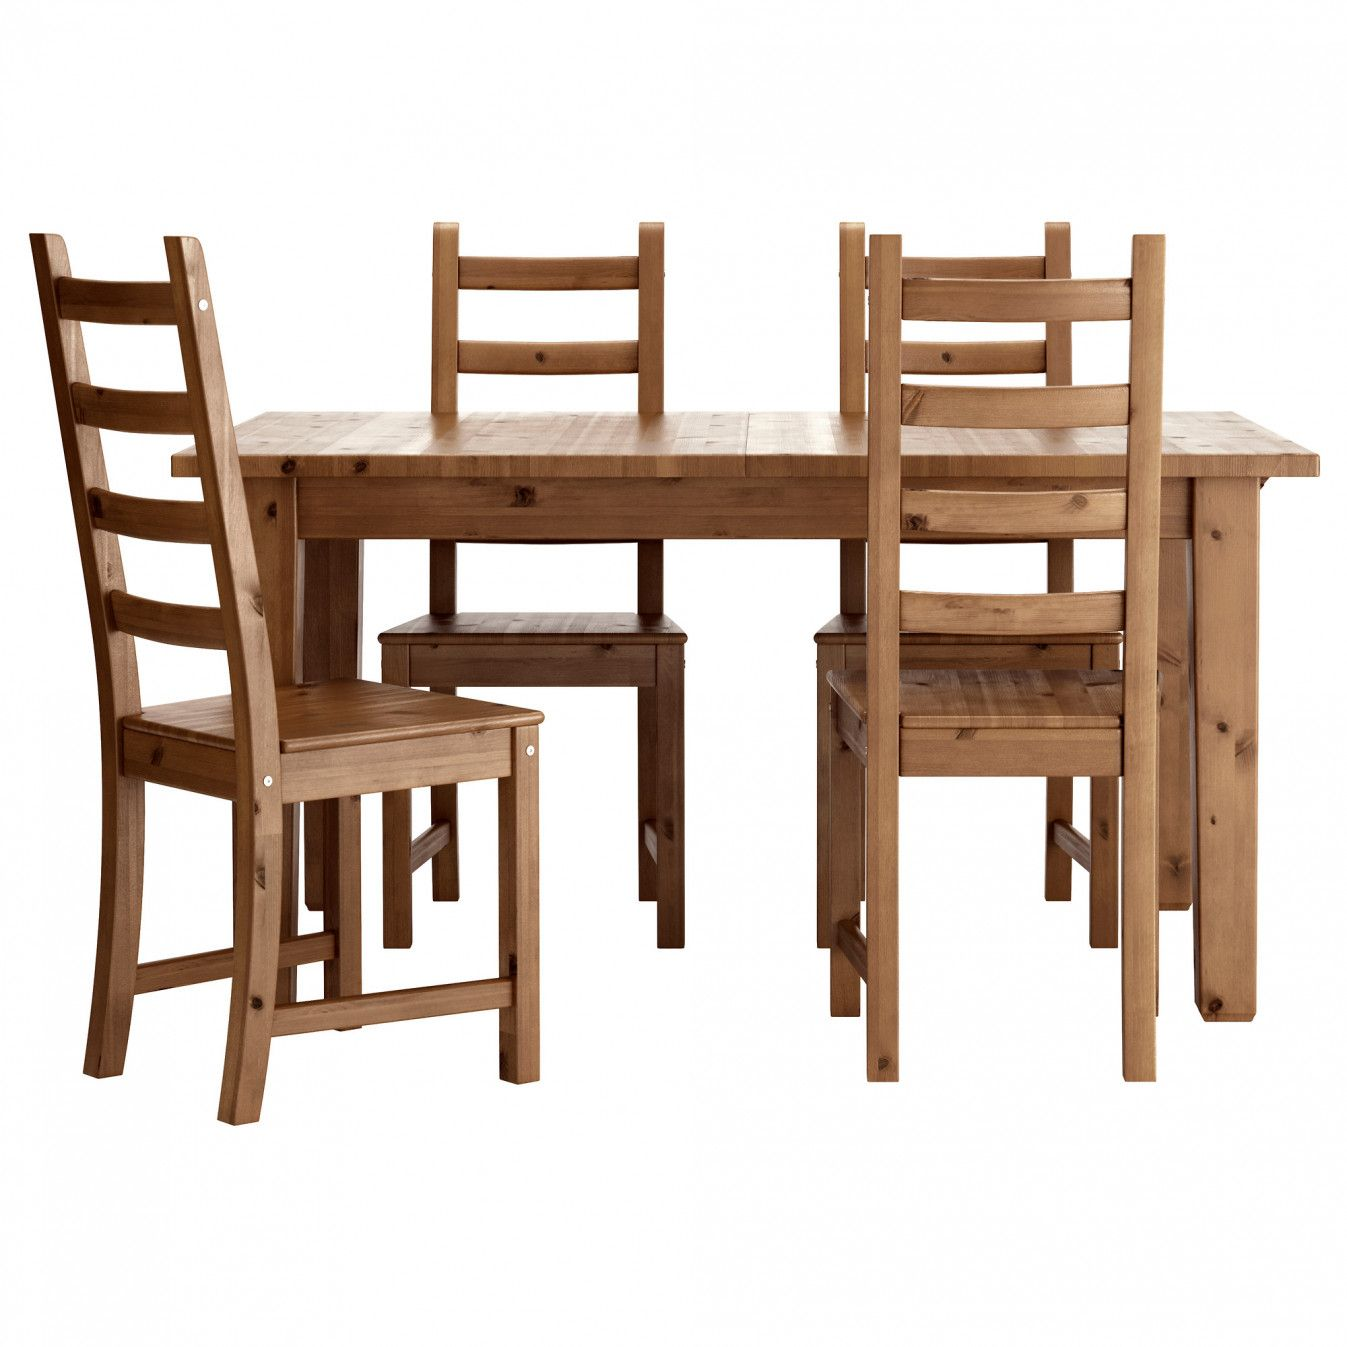 55 Ikea Dining Table and Chairs Set